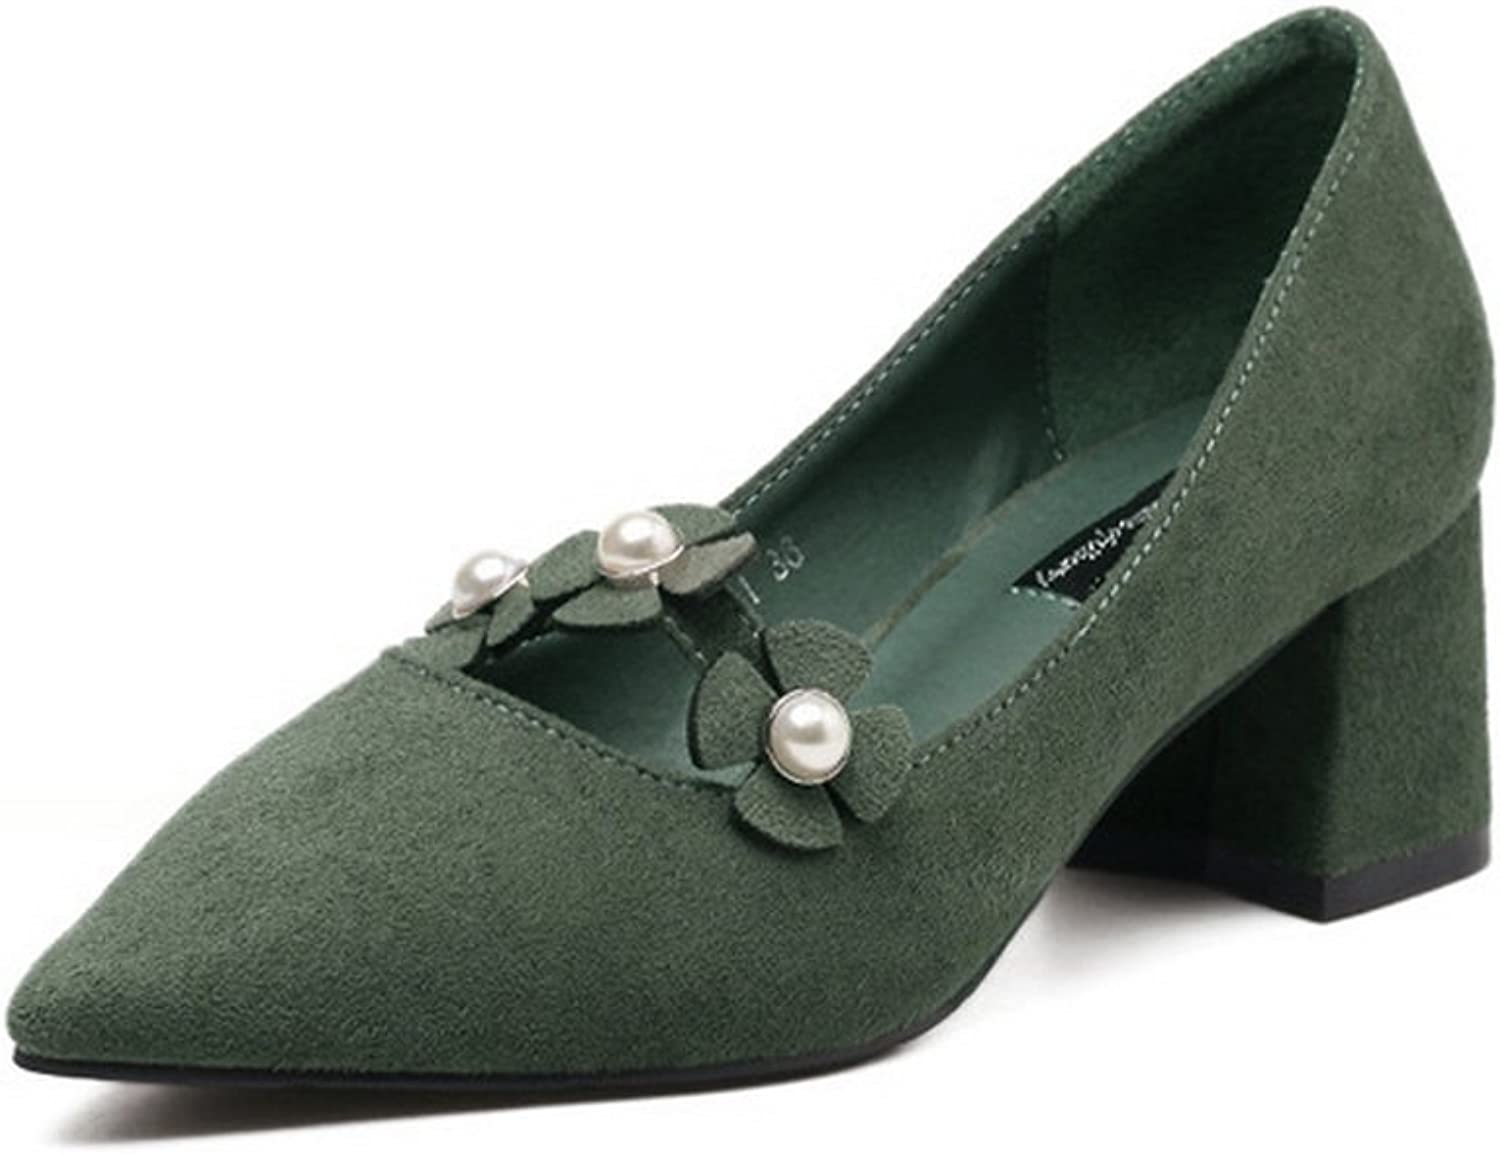 1TO9 Womens Beaded Chunky Heels Pointed-Toe Green Suede Pumps shoes - 6.5 B(M) US